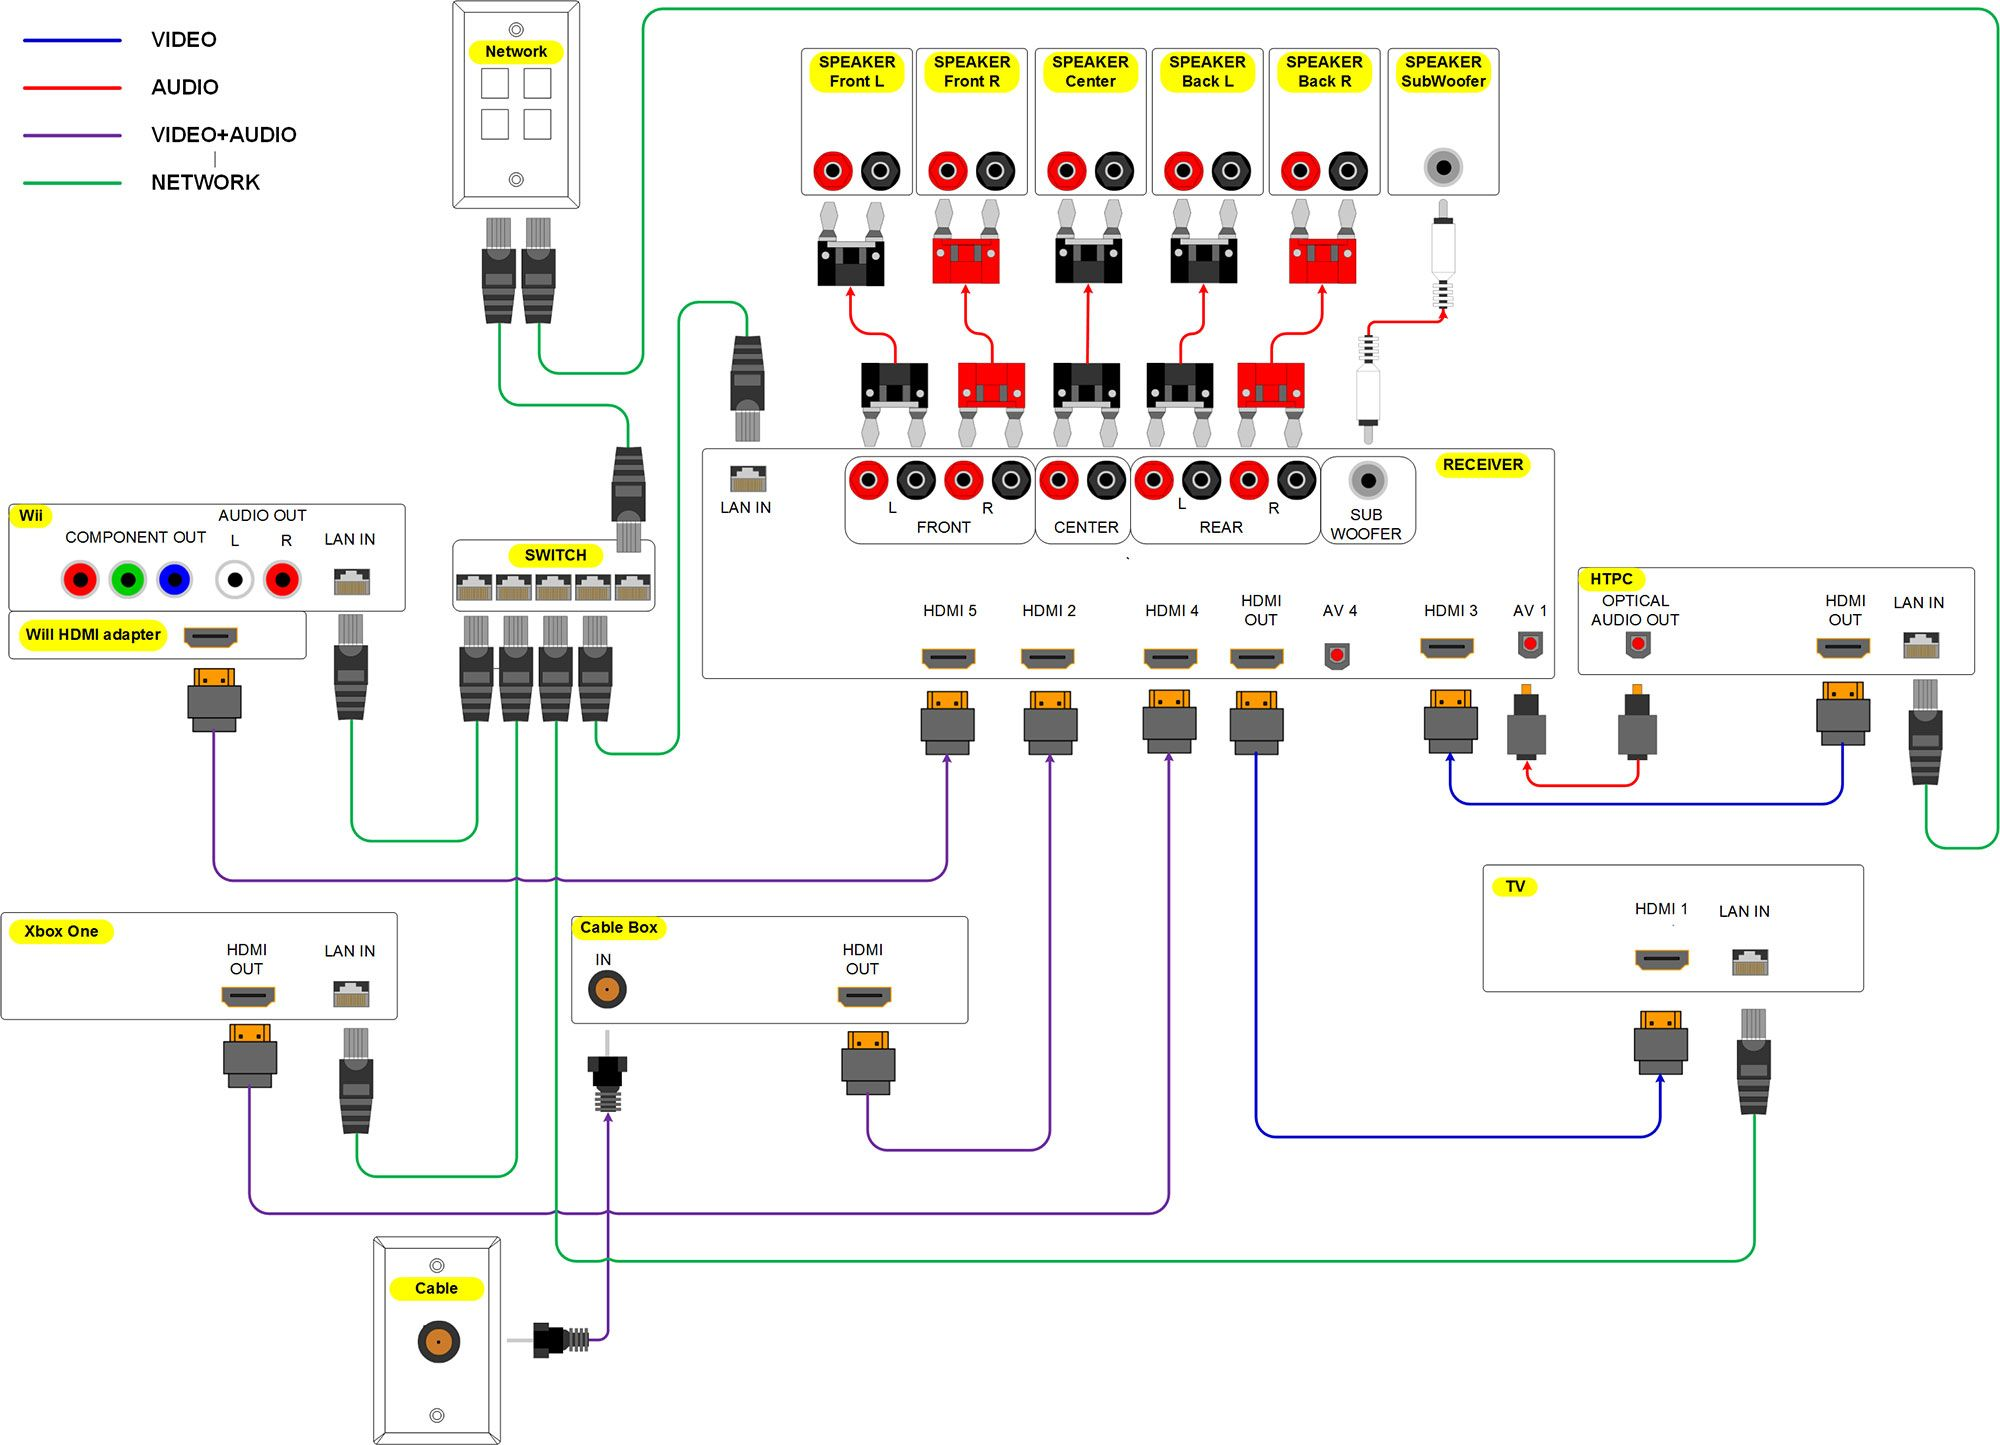 home wiring basics home image wiring diagram house wiring video house image wiring diagram on home wiring basics